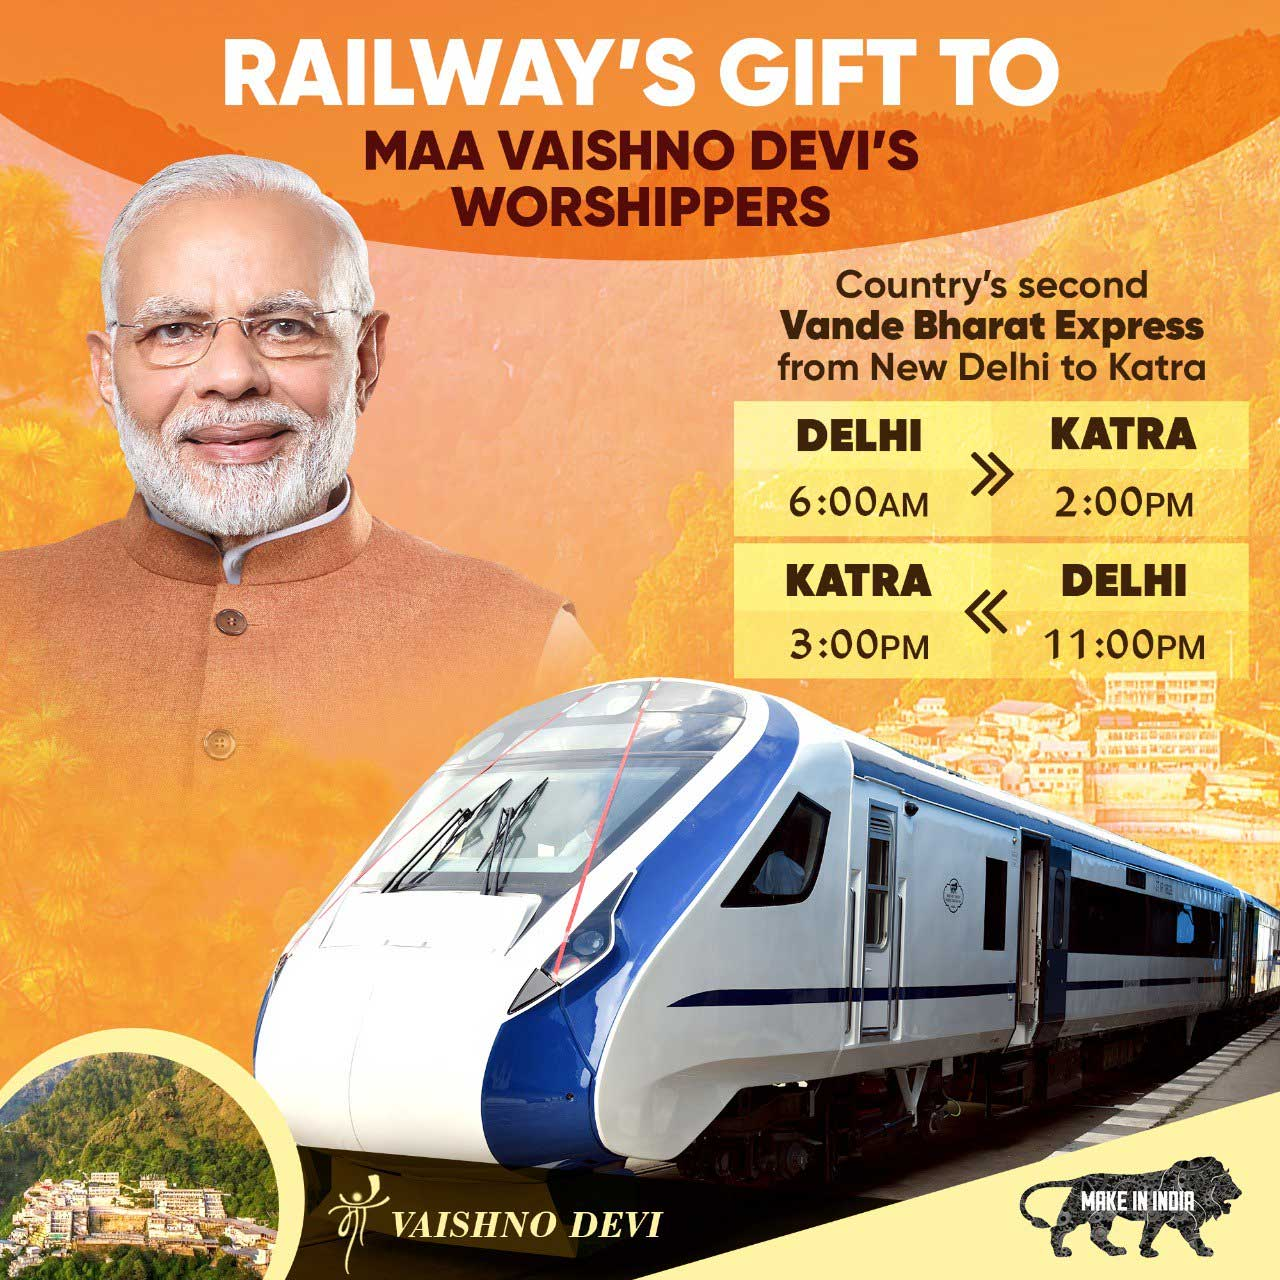 Vande Bharat Express realizes Gandhiji's vision of Swadeshi and fillips Narendra Modi's Make in India